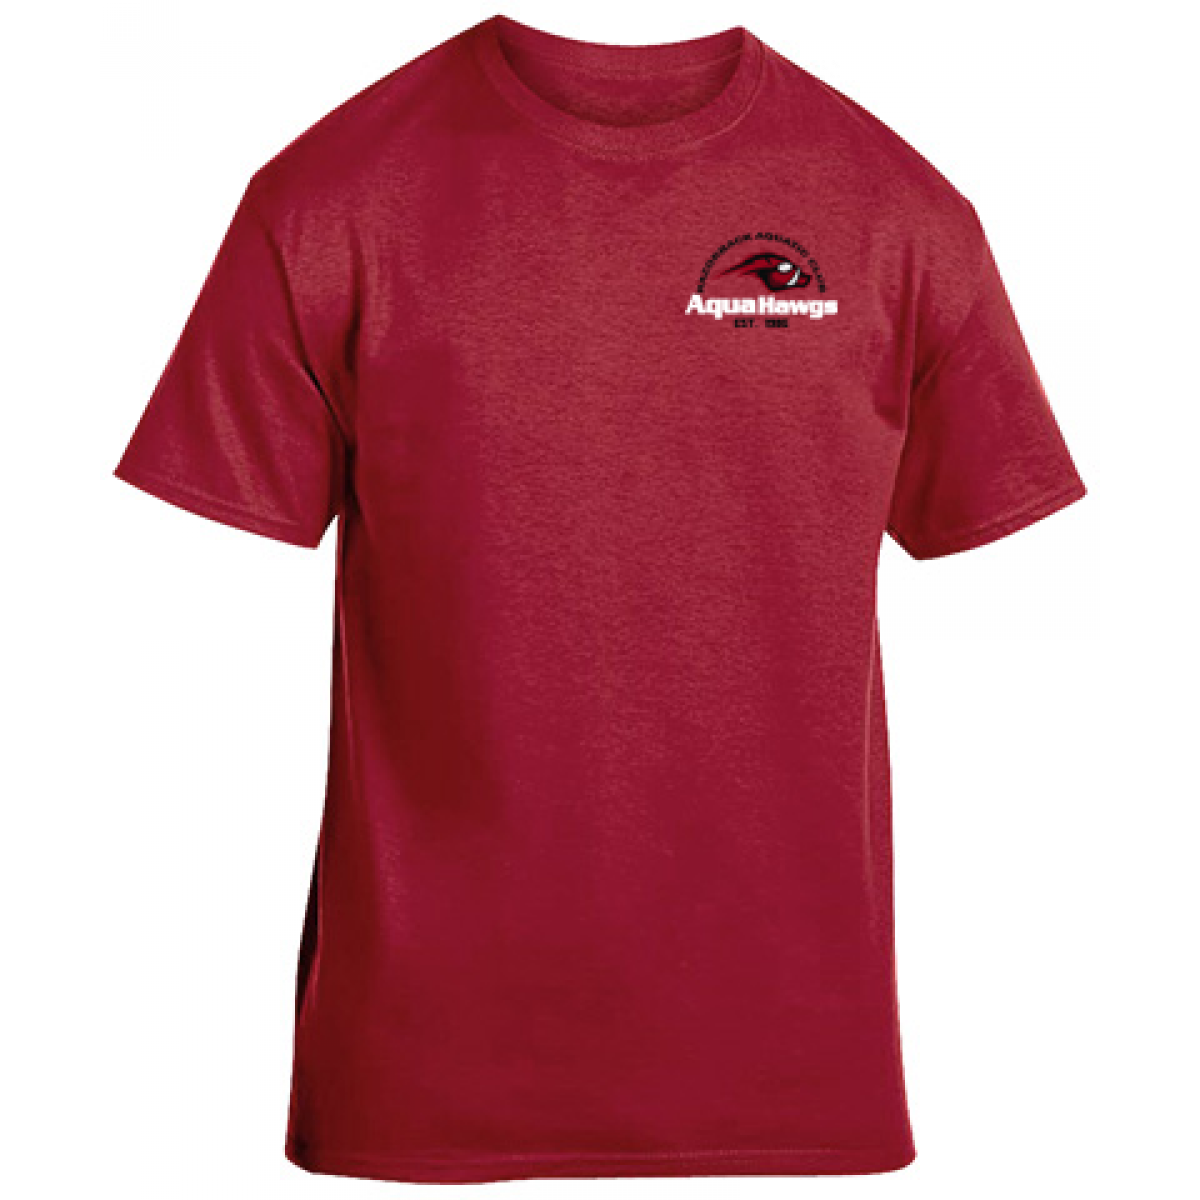 Gildan Cotton Short Sleeve T-Shirt - Cardinal Red-Cardinal Red-S